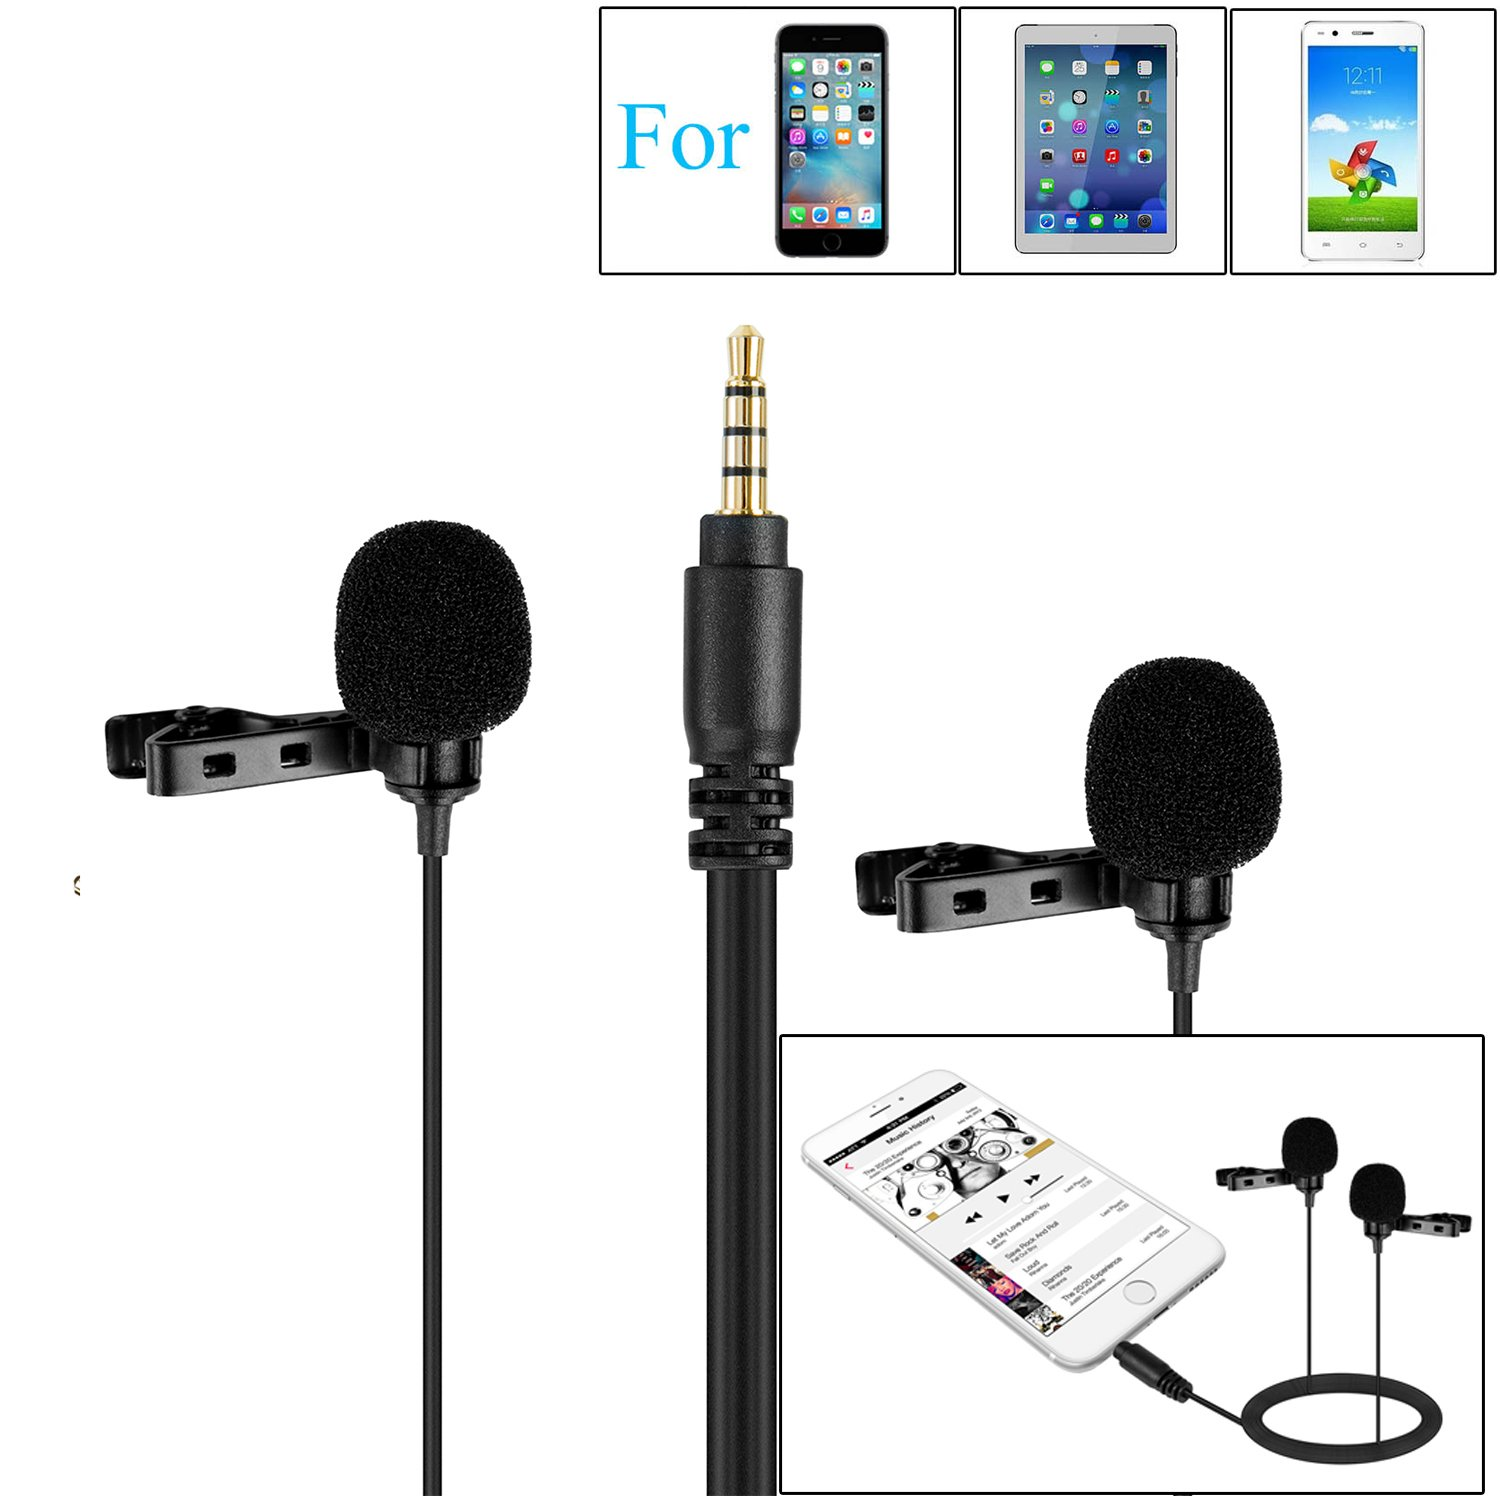 236''/6m BOYA BY-M1 Omnidirectional Lavalier Condenser Recording Microphone for Canon Nikon Sony DSLR Camera IOS Android Smartphone iPhone 8 8 plus 7 7 plus 6 6s Plus Camcorder Audio Recorder Youtube Podcast Interview Video BY--M1